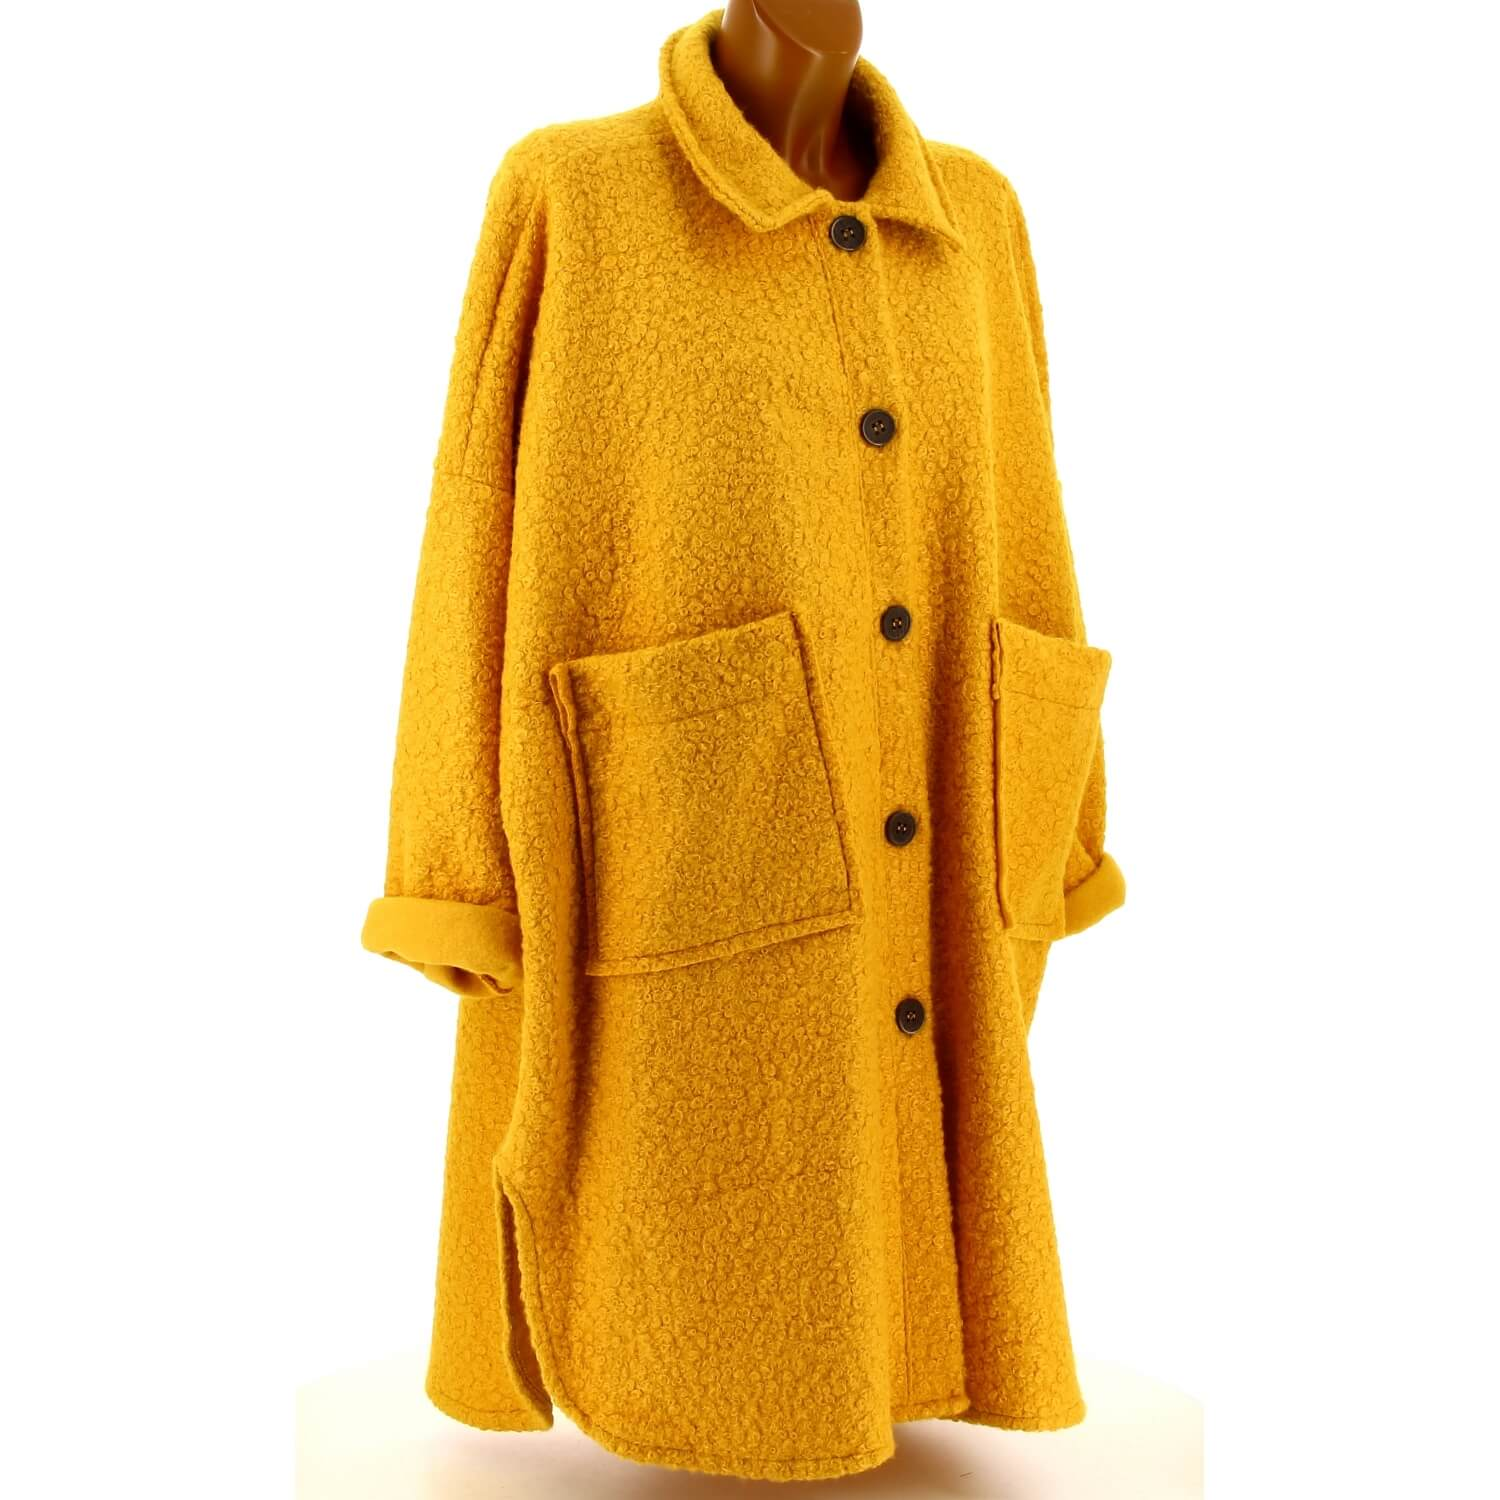 Manteau femme grande taille hiver laine moutarde SONIA. Loading zoom b931cf1ffd2c